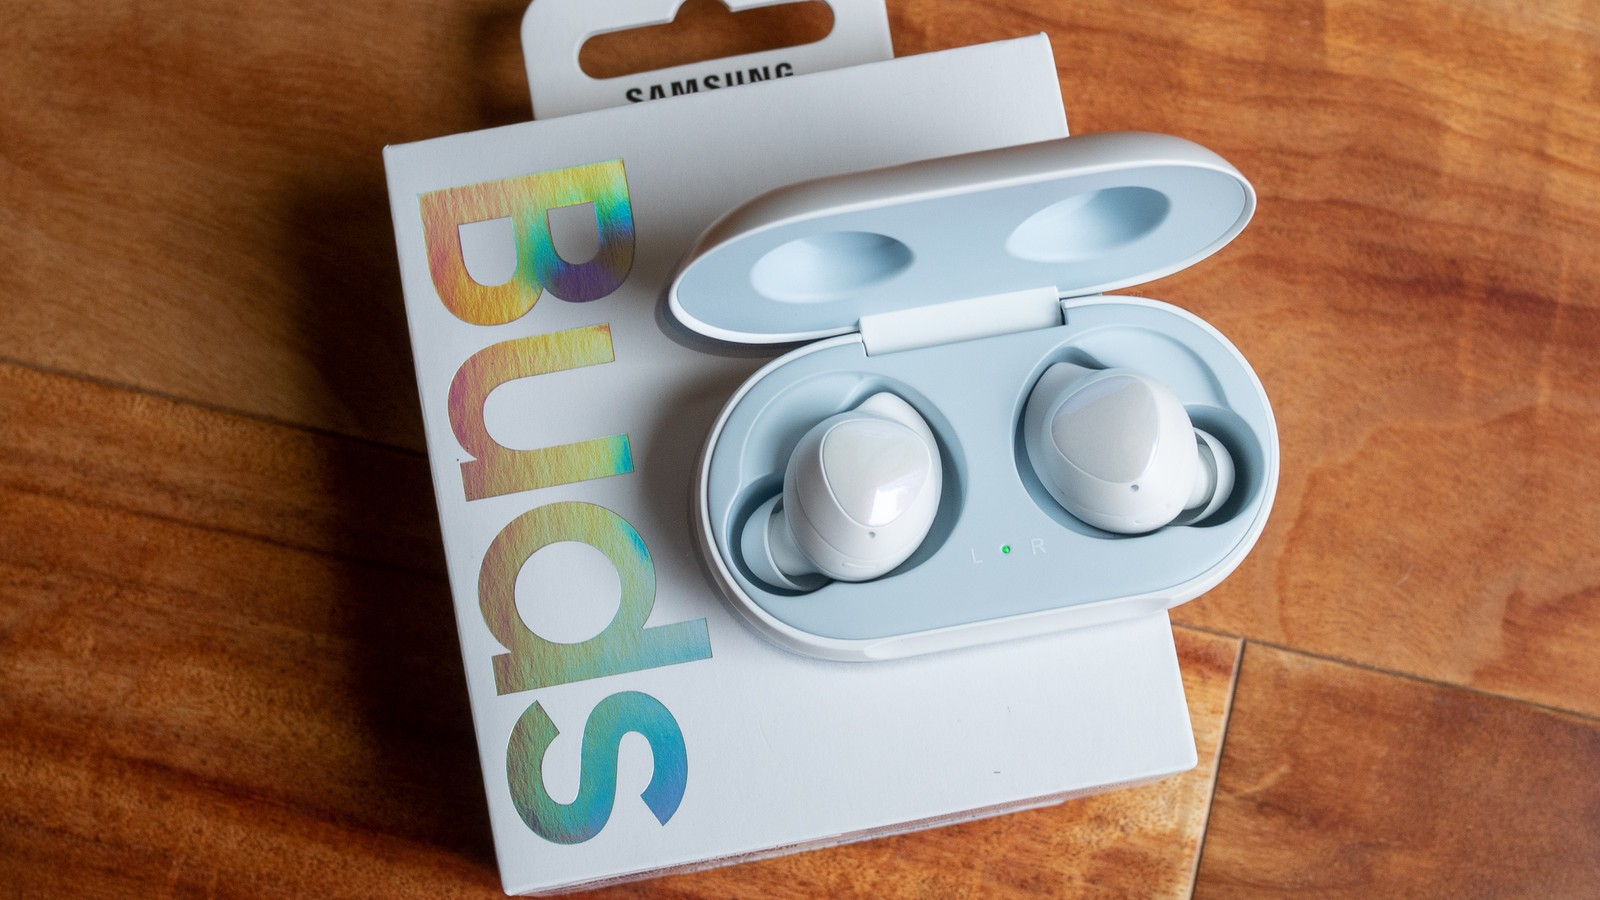 How to replace a lost Galaxy Buds earbud | Android Central